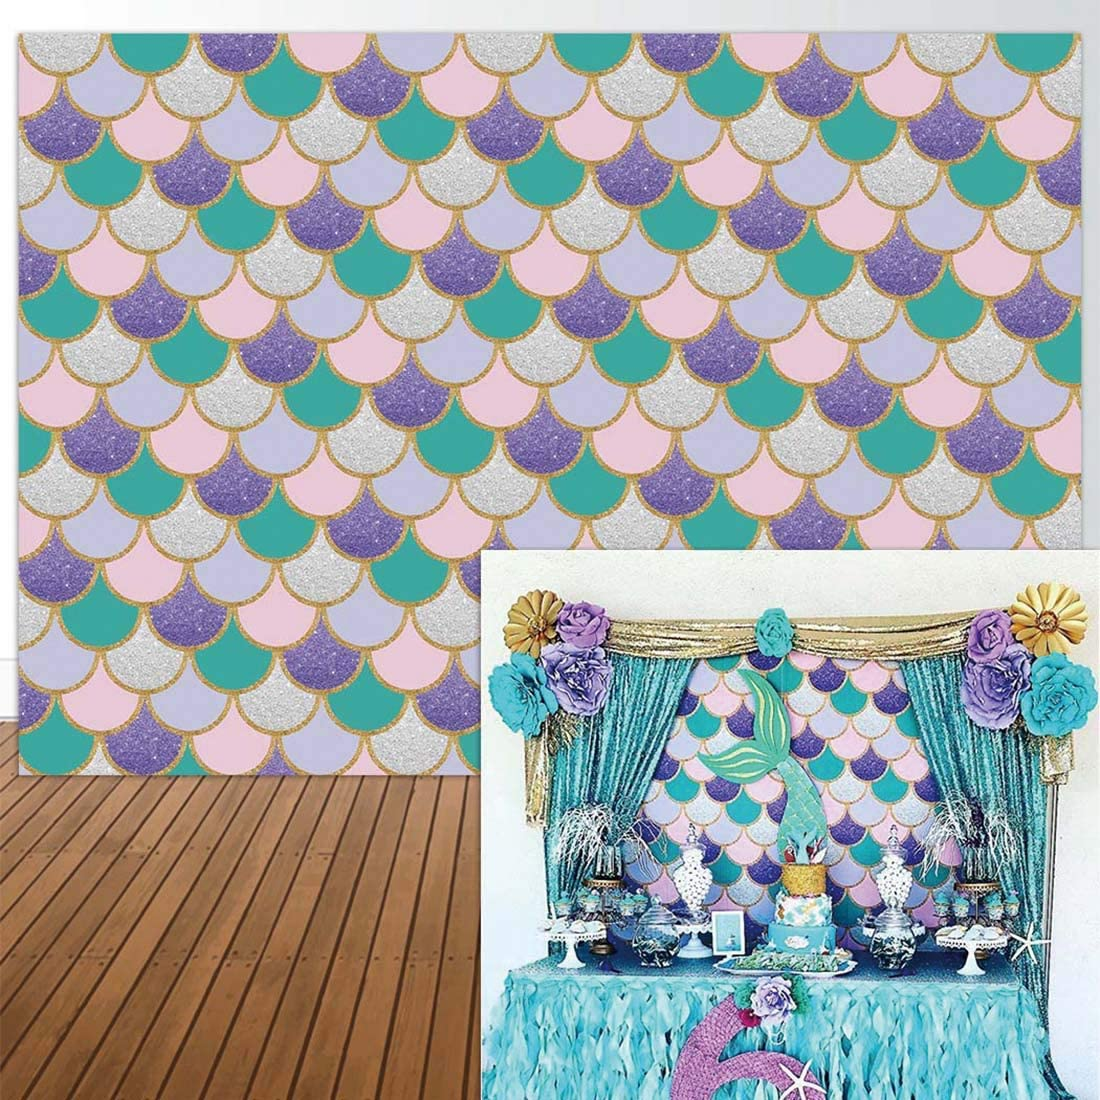 New 5x5ft Mermaid Birthday Party Photography Backdrop Glitter Pink Purple Mermaid Scales Happy Birthday Banner Pricness Background Newborn Baby Shower Cake Table Decor Photocall Studio Props